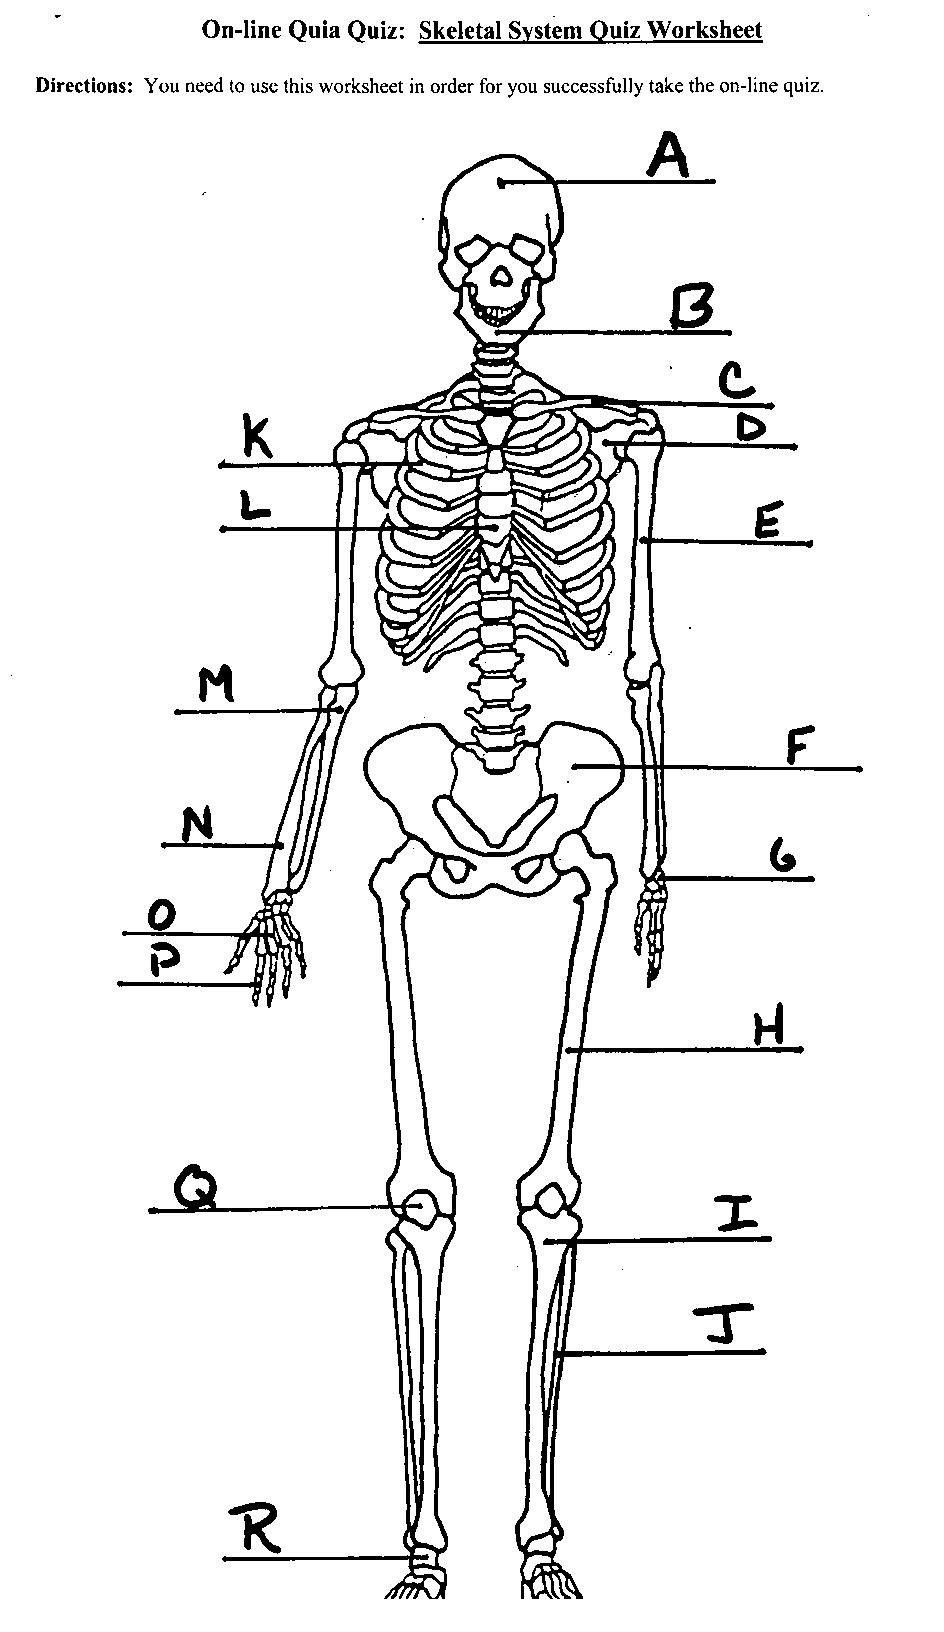 small resolution of unlabeled human skeleton diagram unlabeled human skeleton diagram blank skeleton diagram front and back 1